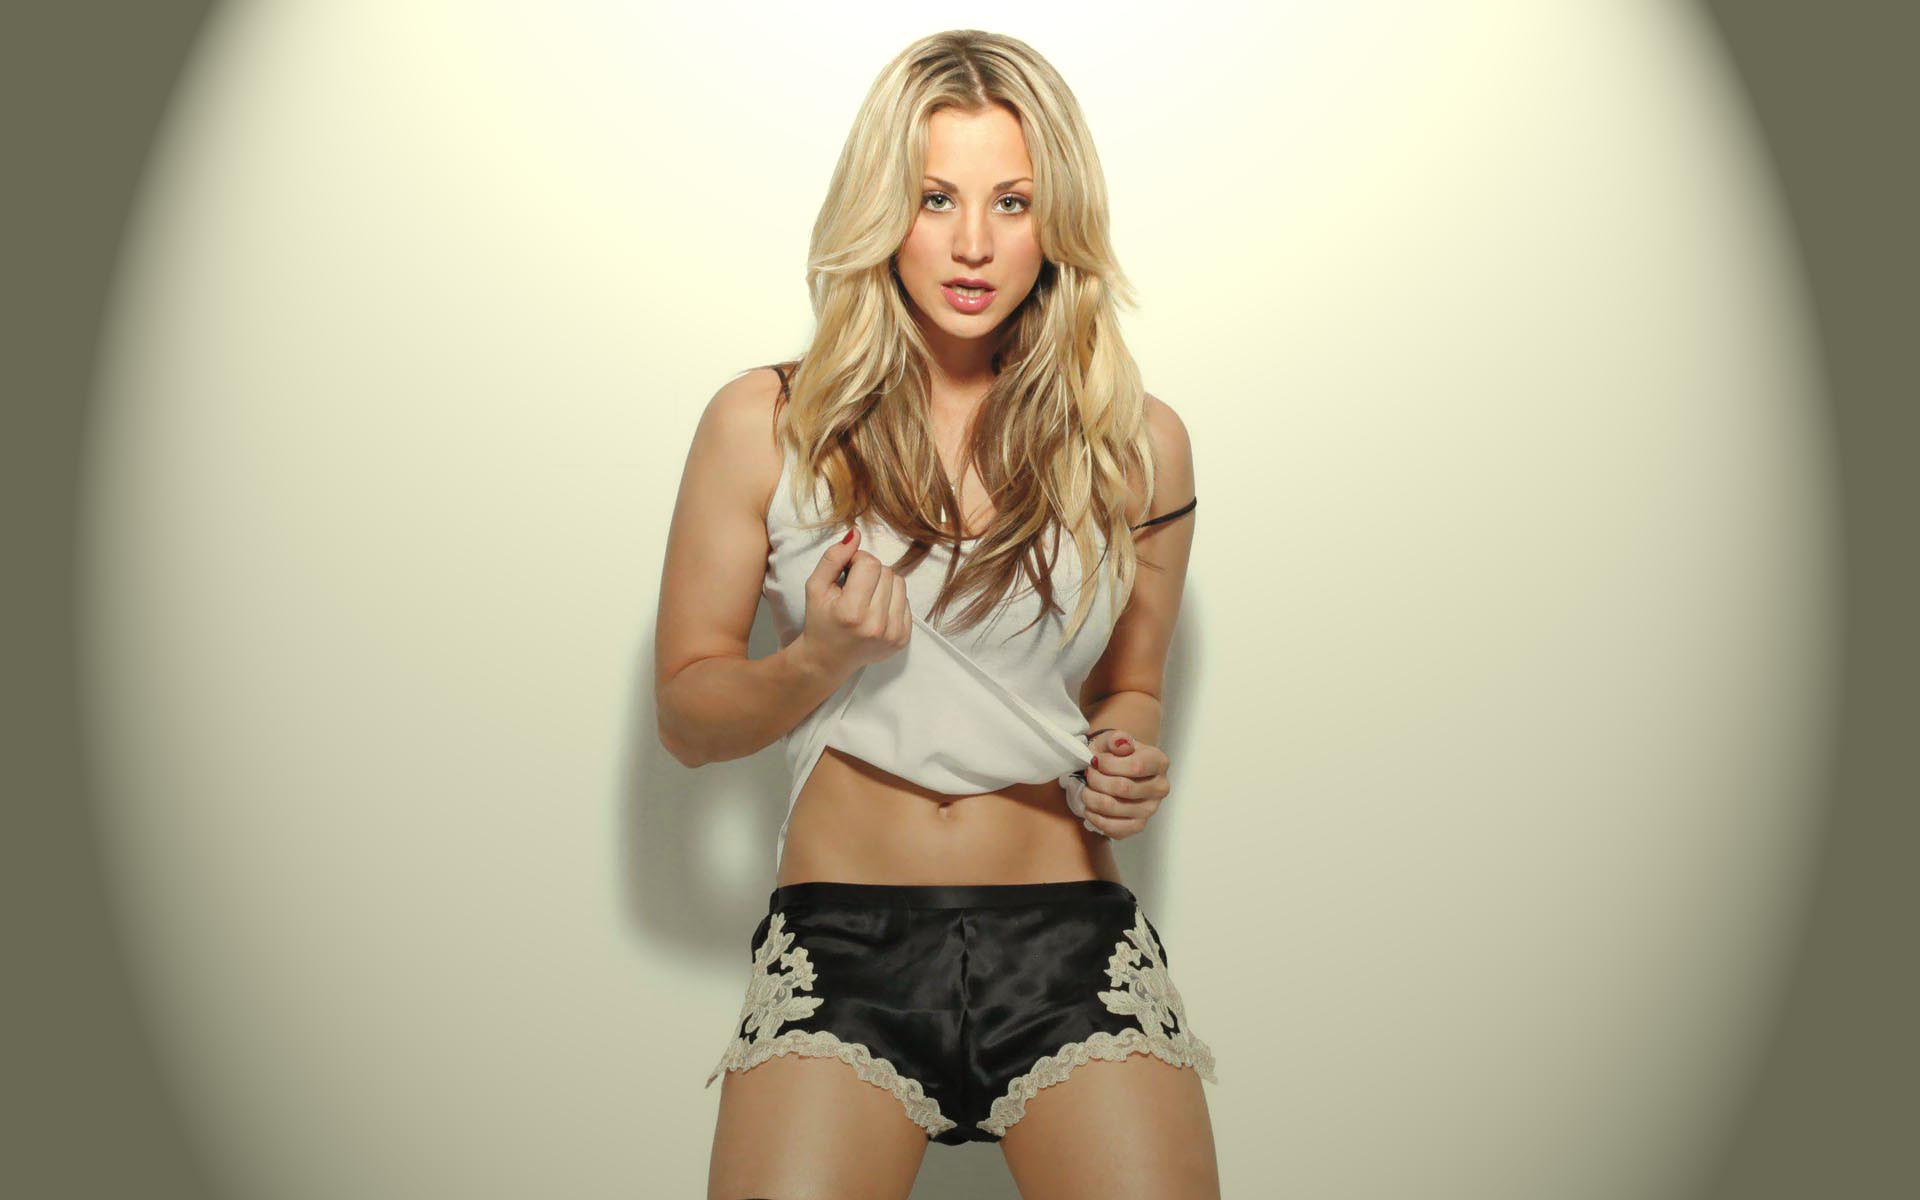 1920x1200 - Kaley Cuoco Wallpapers 27